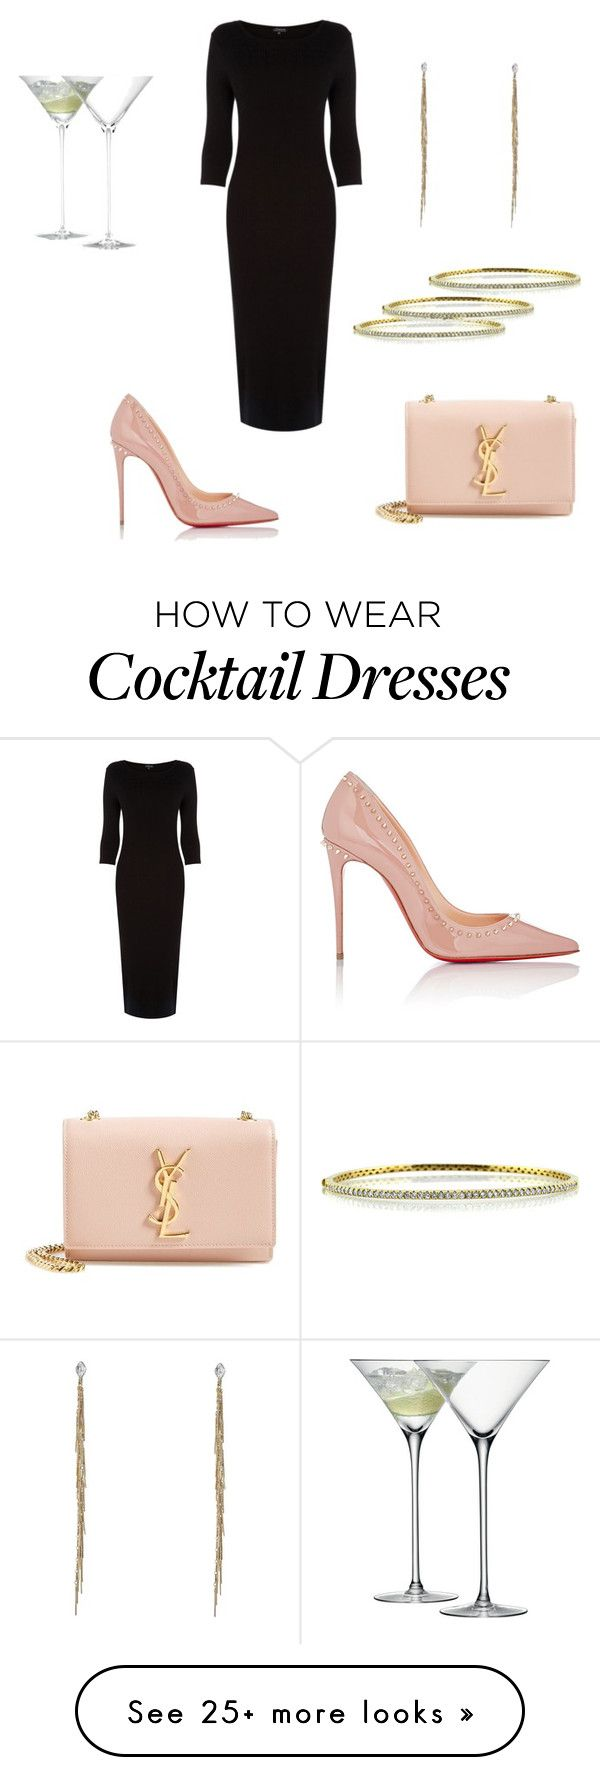 """Untitled #56"" by thisvi on Polyvore featuring Yves Saint Laurent, Warehouse, Christian Louboutin, LSA International, Mark Broumand and DANNIJO"